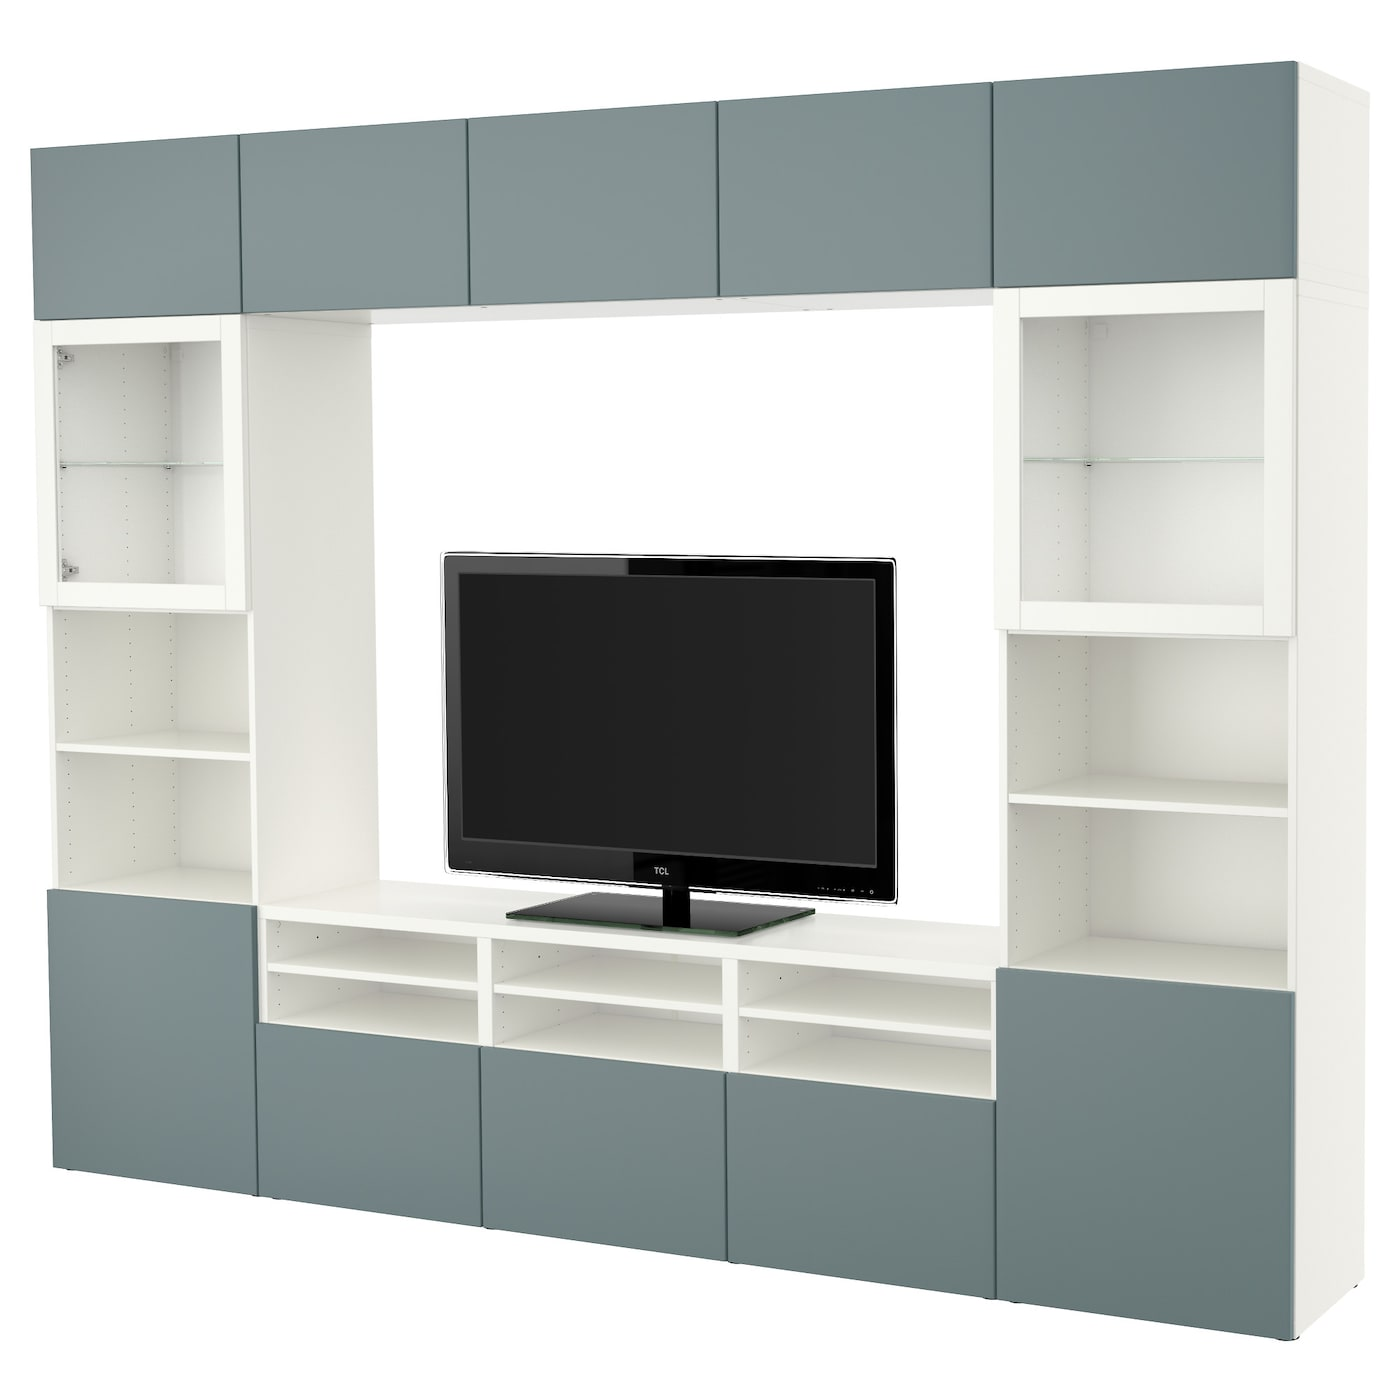 Best Tv Storage Combination Glass Doors White Valviken Grey  # Besta Ikea Meuble Tv